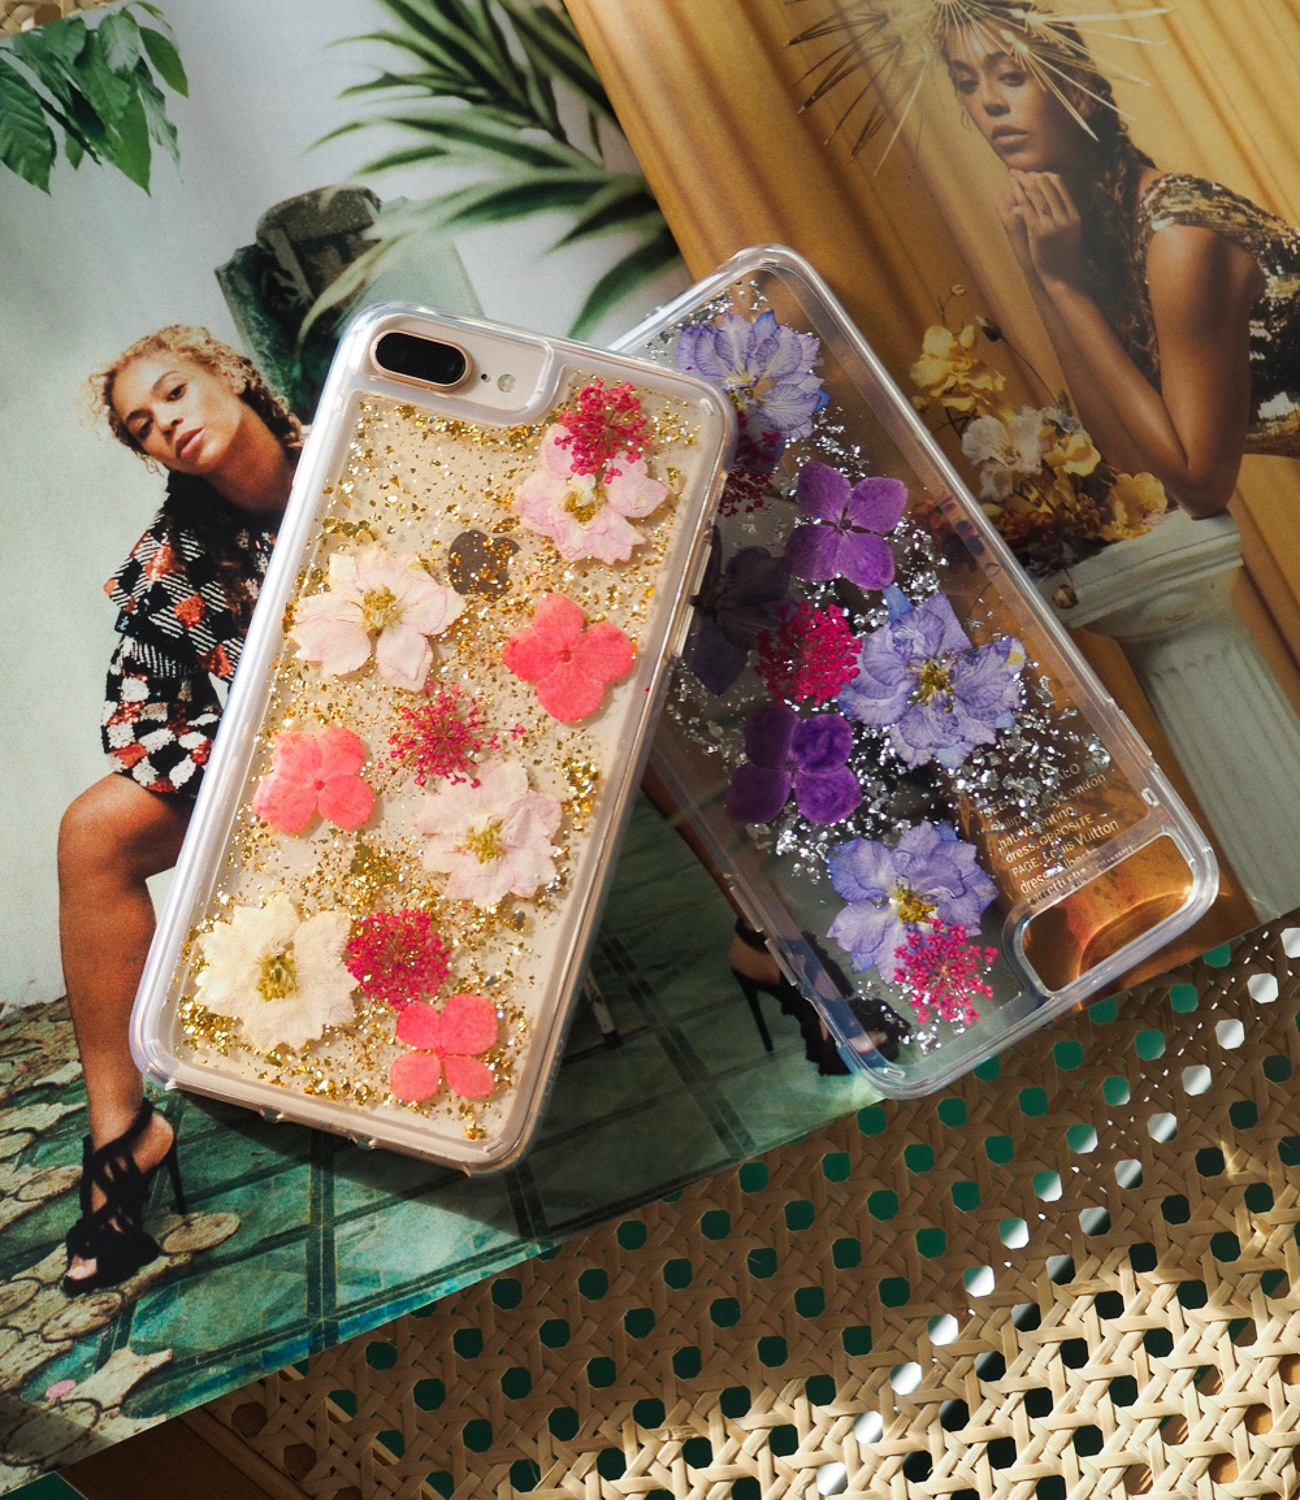 DE SMUKKESTE BLOMSTREDE IPHONE COVERS 1